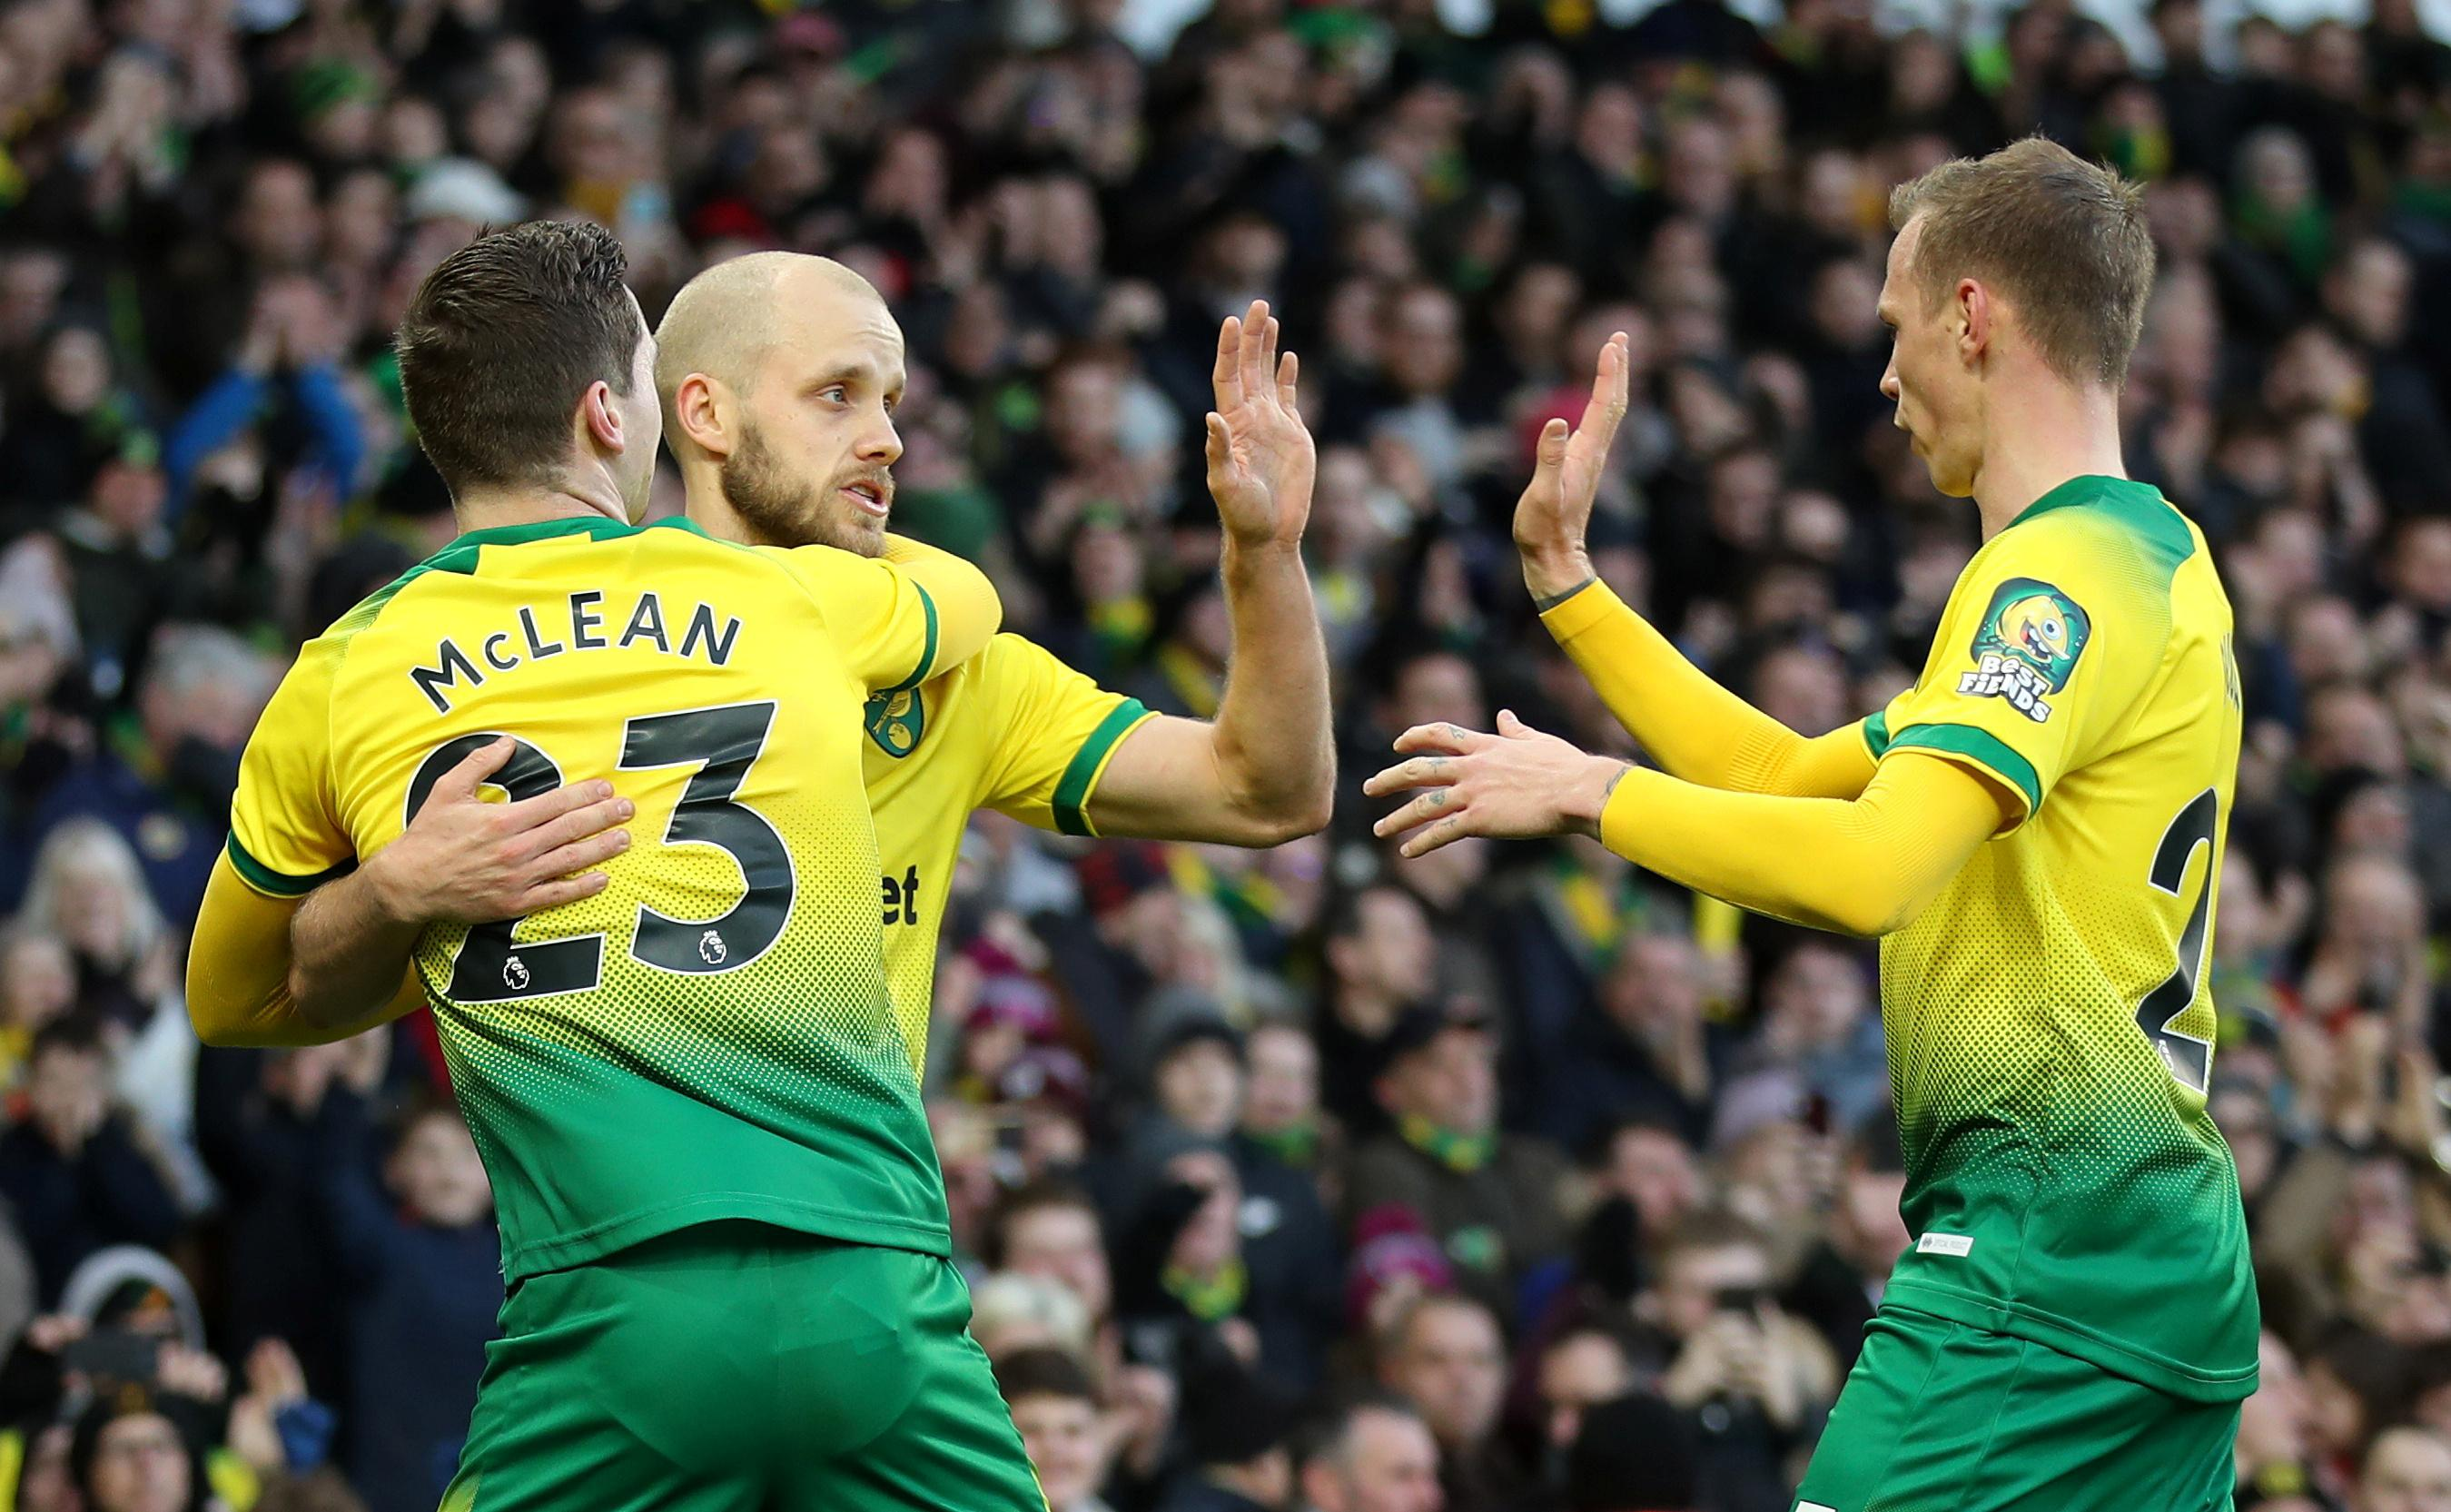 Norwich log vital win over Bournemouth in battle of strugglers